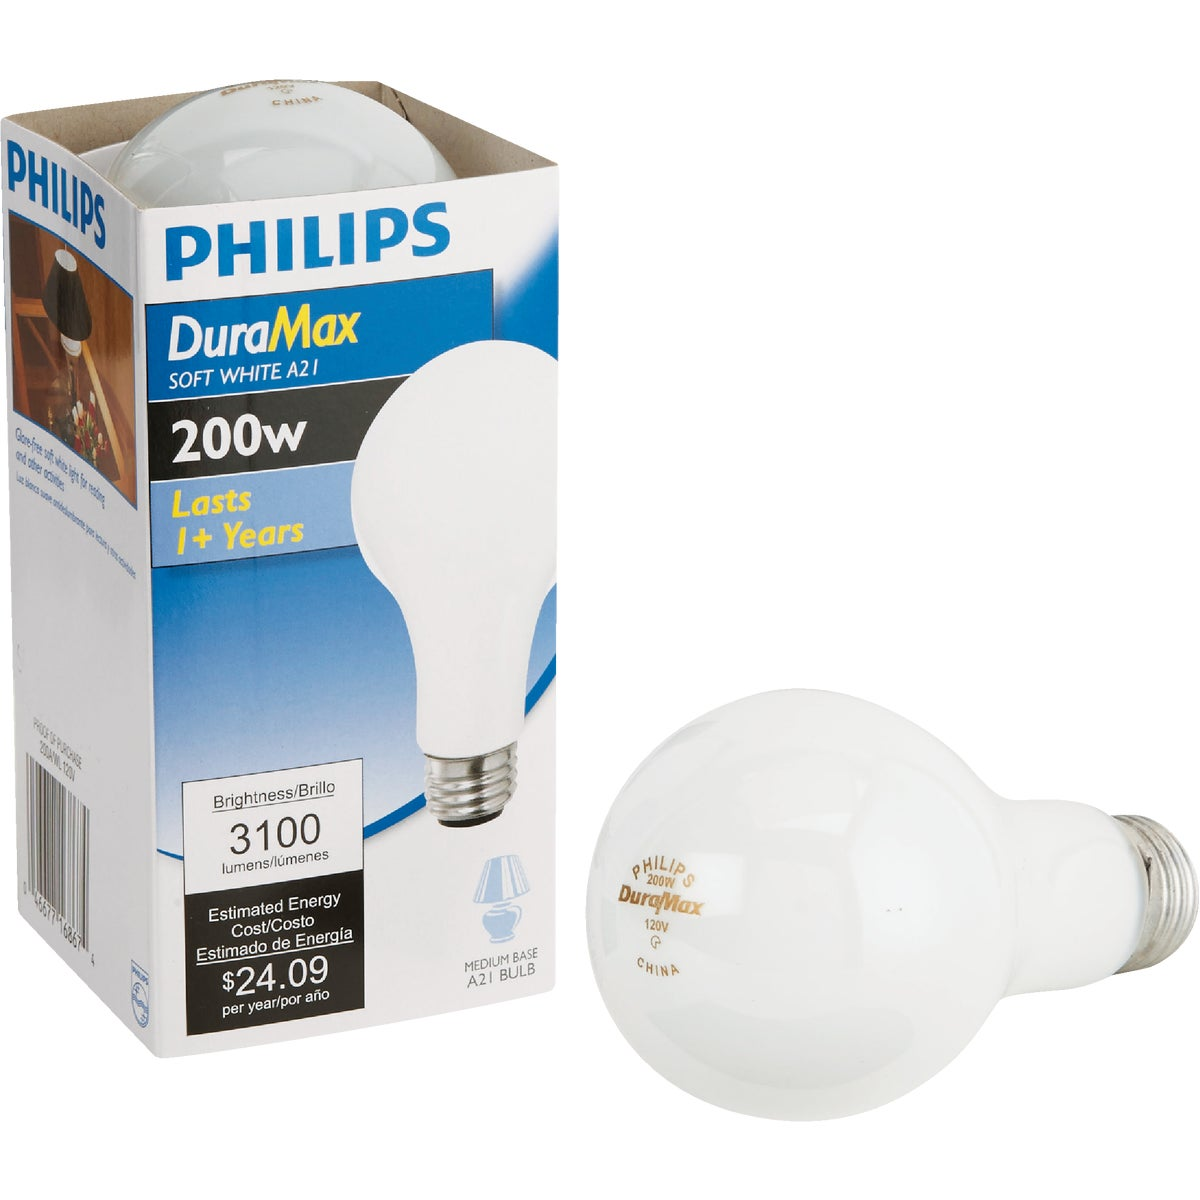 200W SW LIGHT BULB - 44534 by G E Lighting